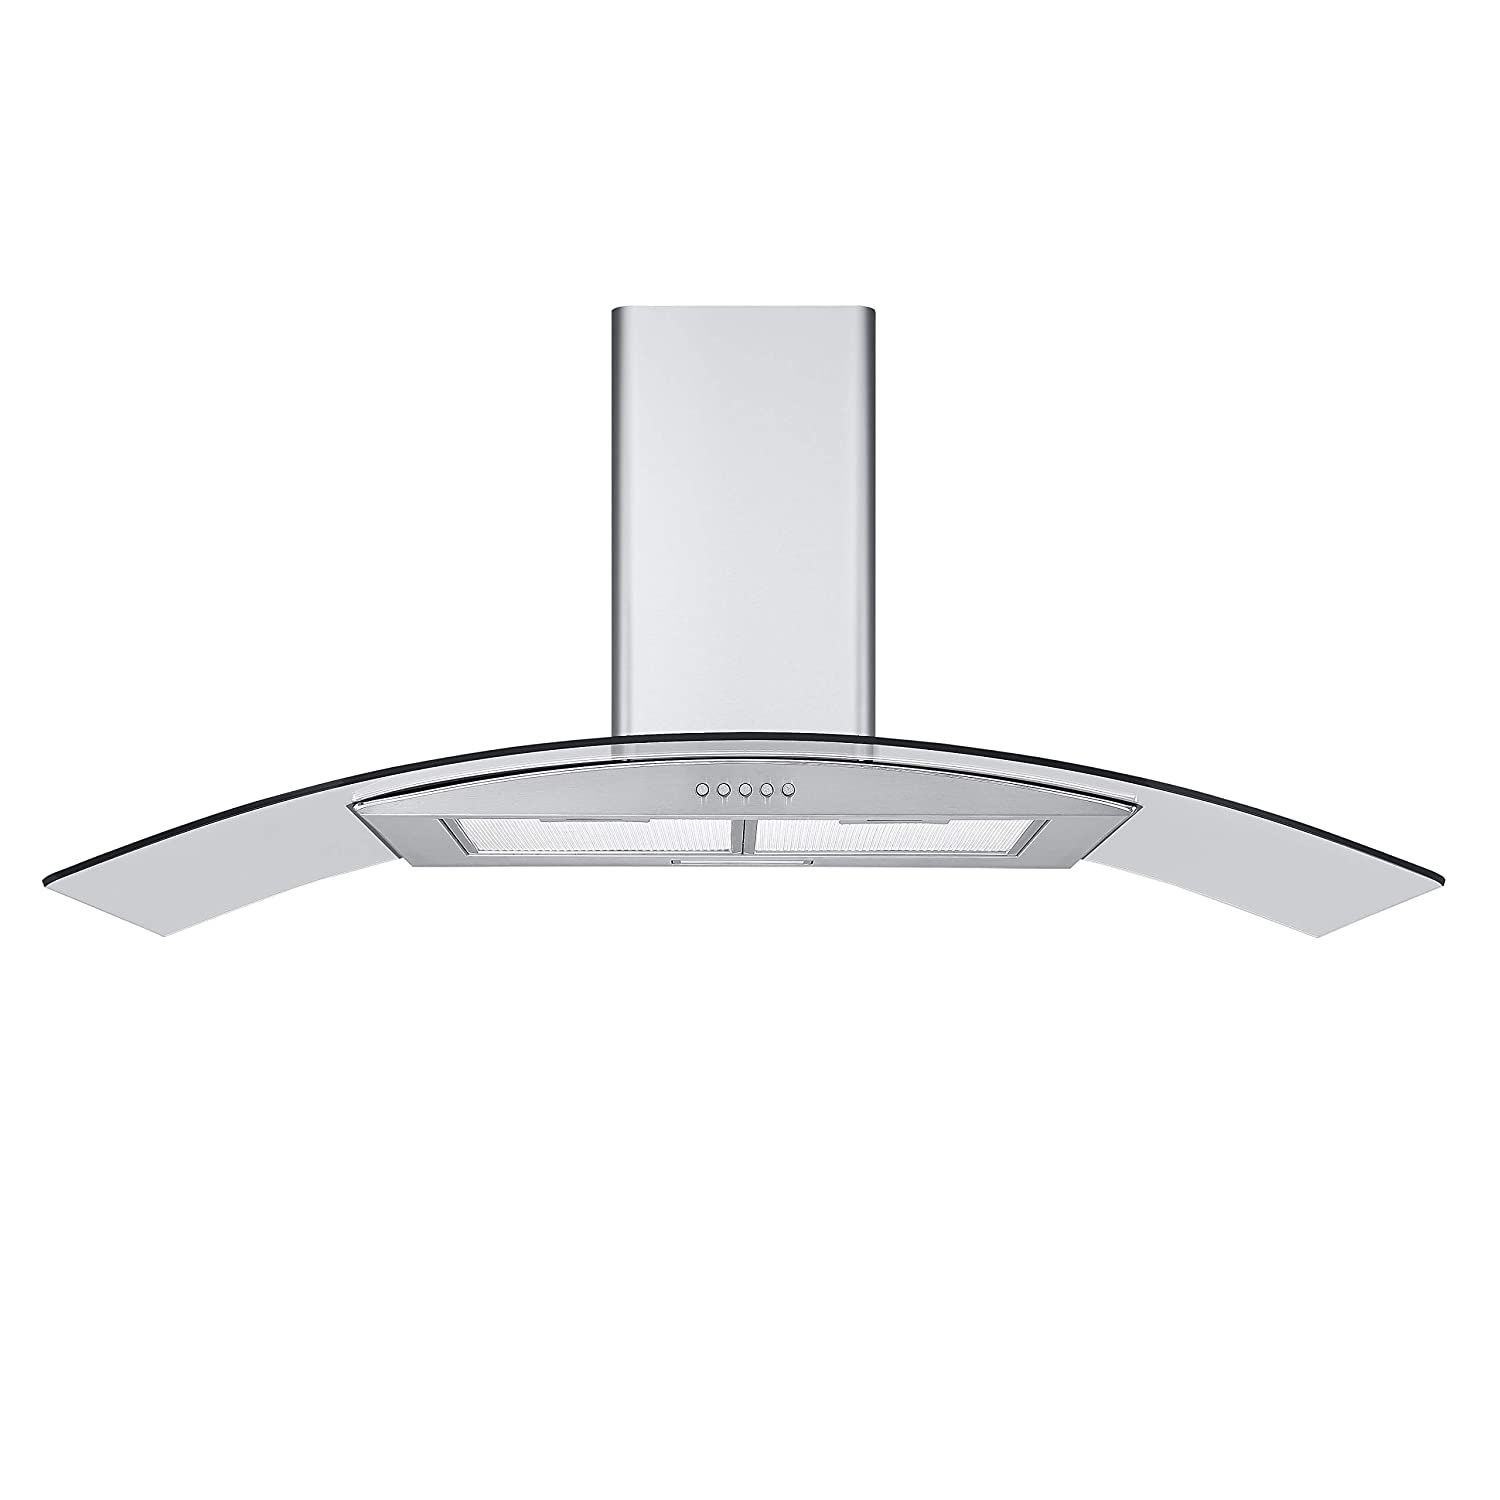 Cookology CGL100SS Stainless Steel 100cm Curved Glass Chimney Cooker Hood